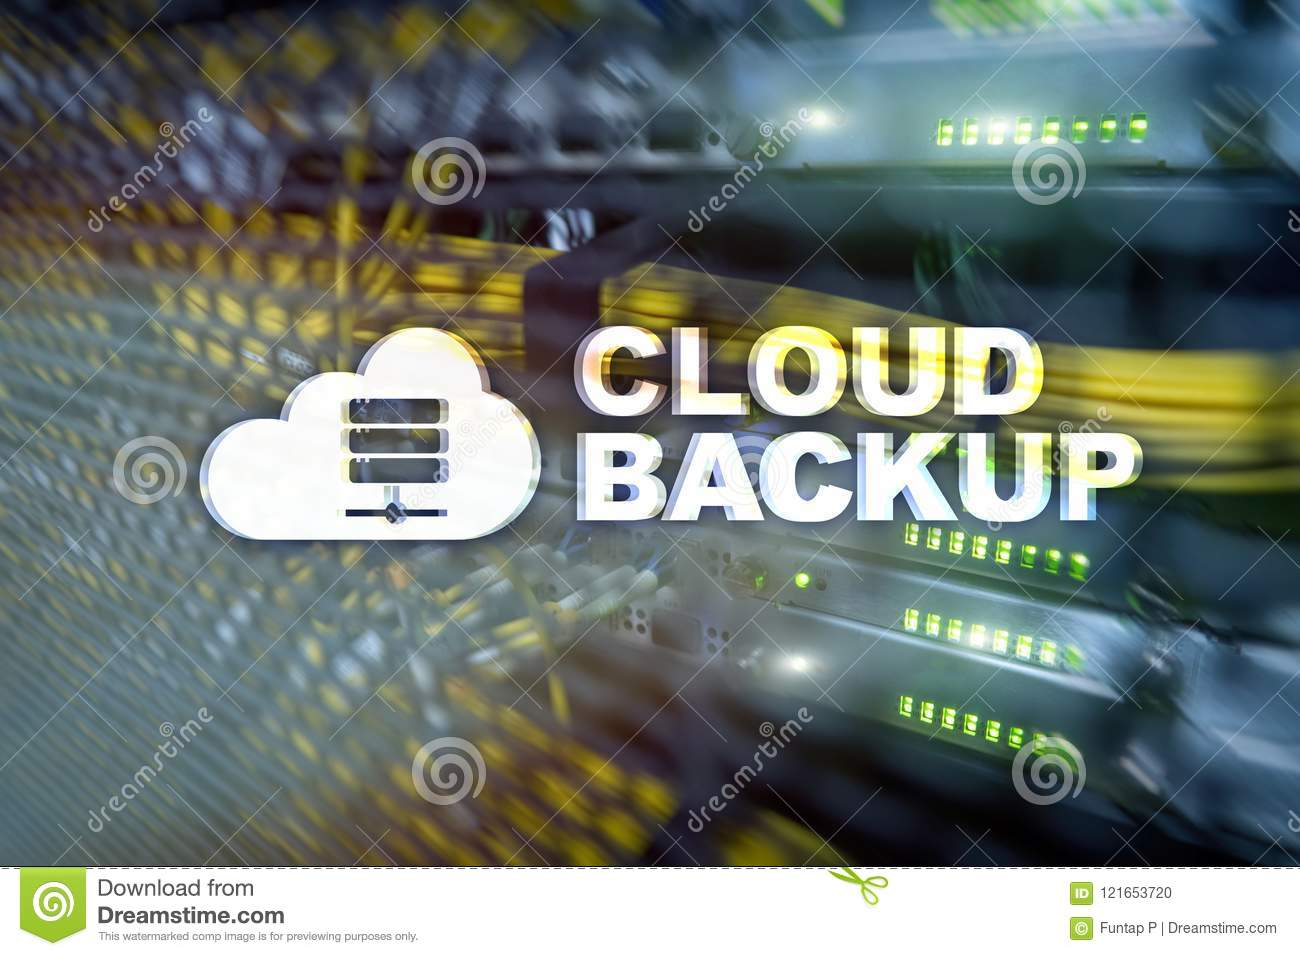 Cloud backup. Server data loss prevention. Cyber security